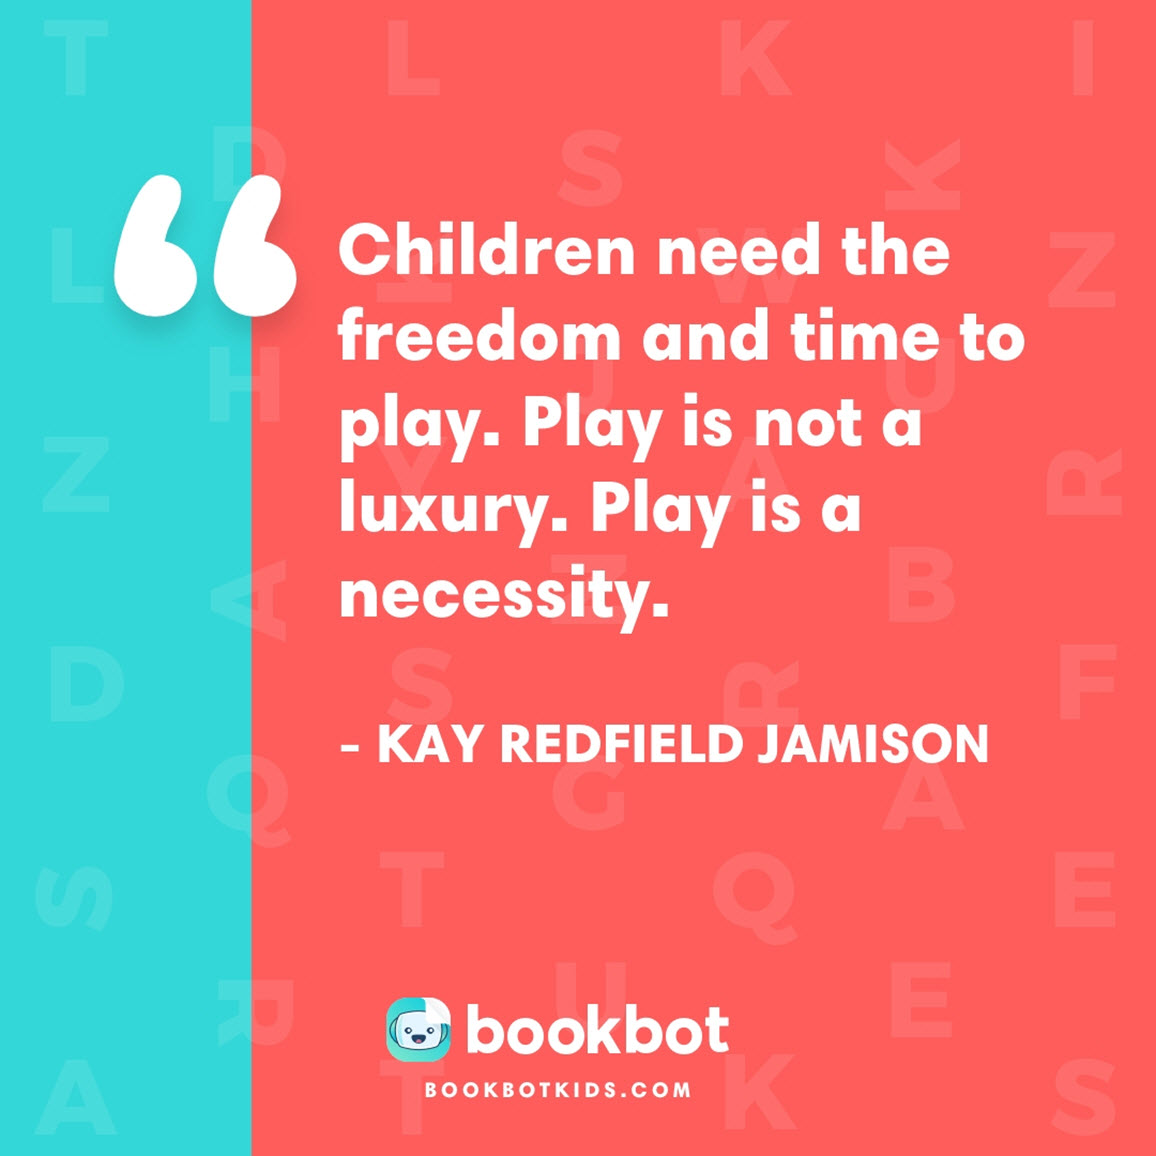 Children need the freedom and time to play. Play is not a luxury. Play is a necessity. - Kay Redfield Jamison